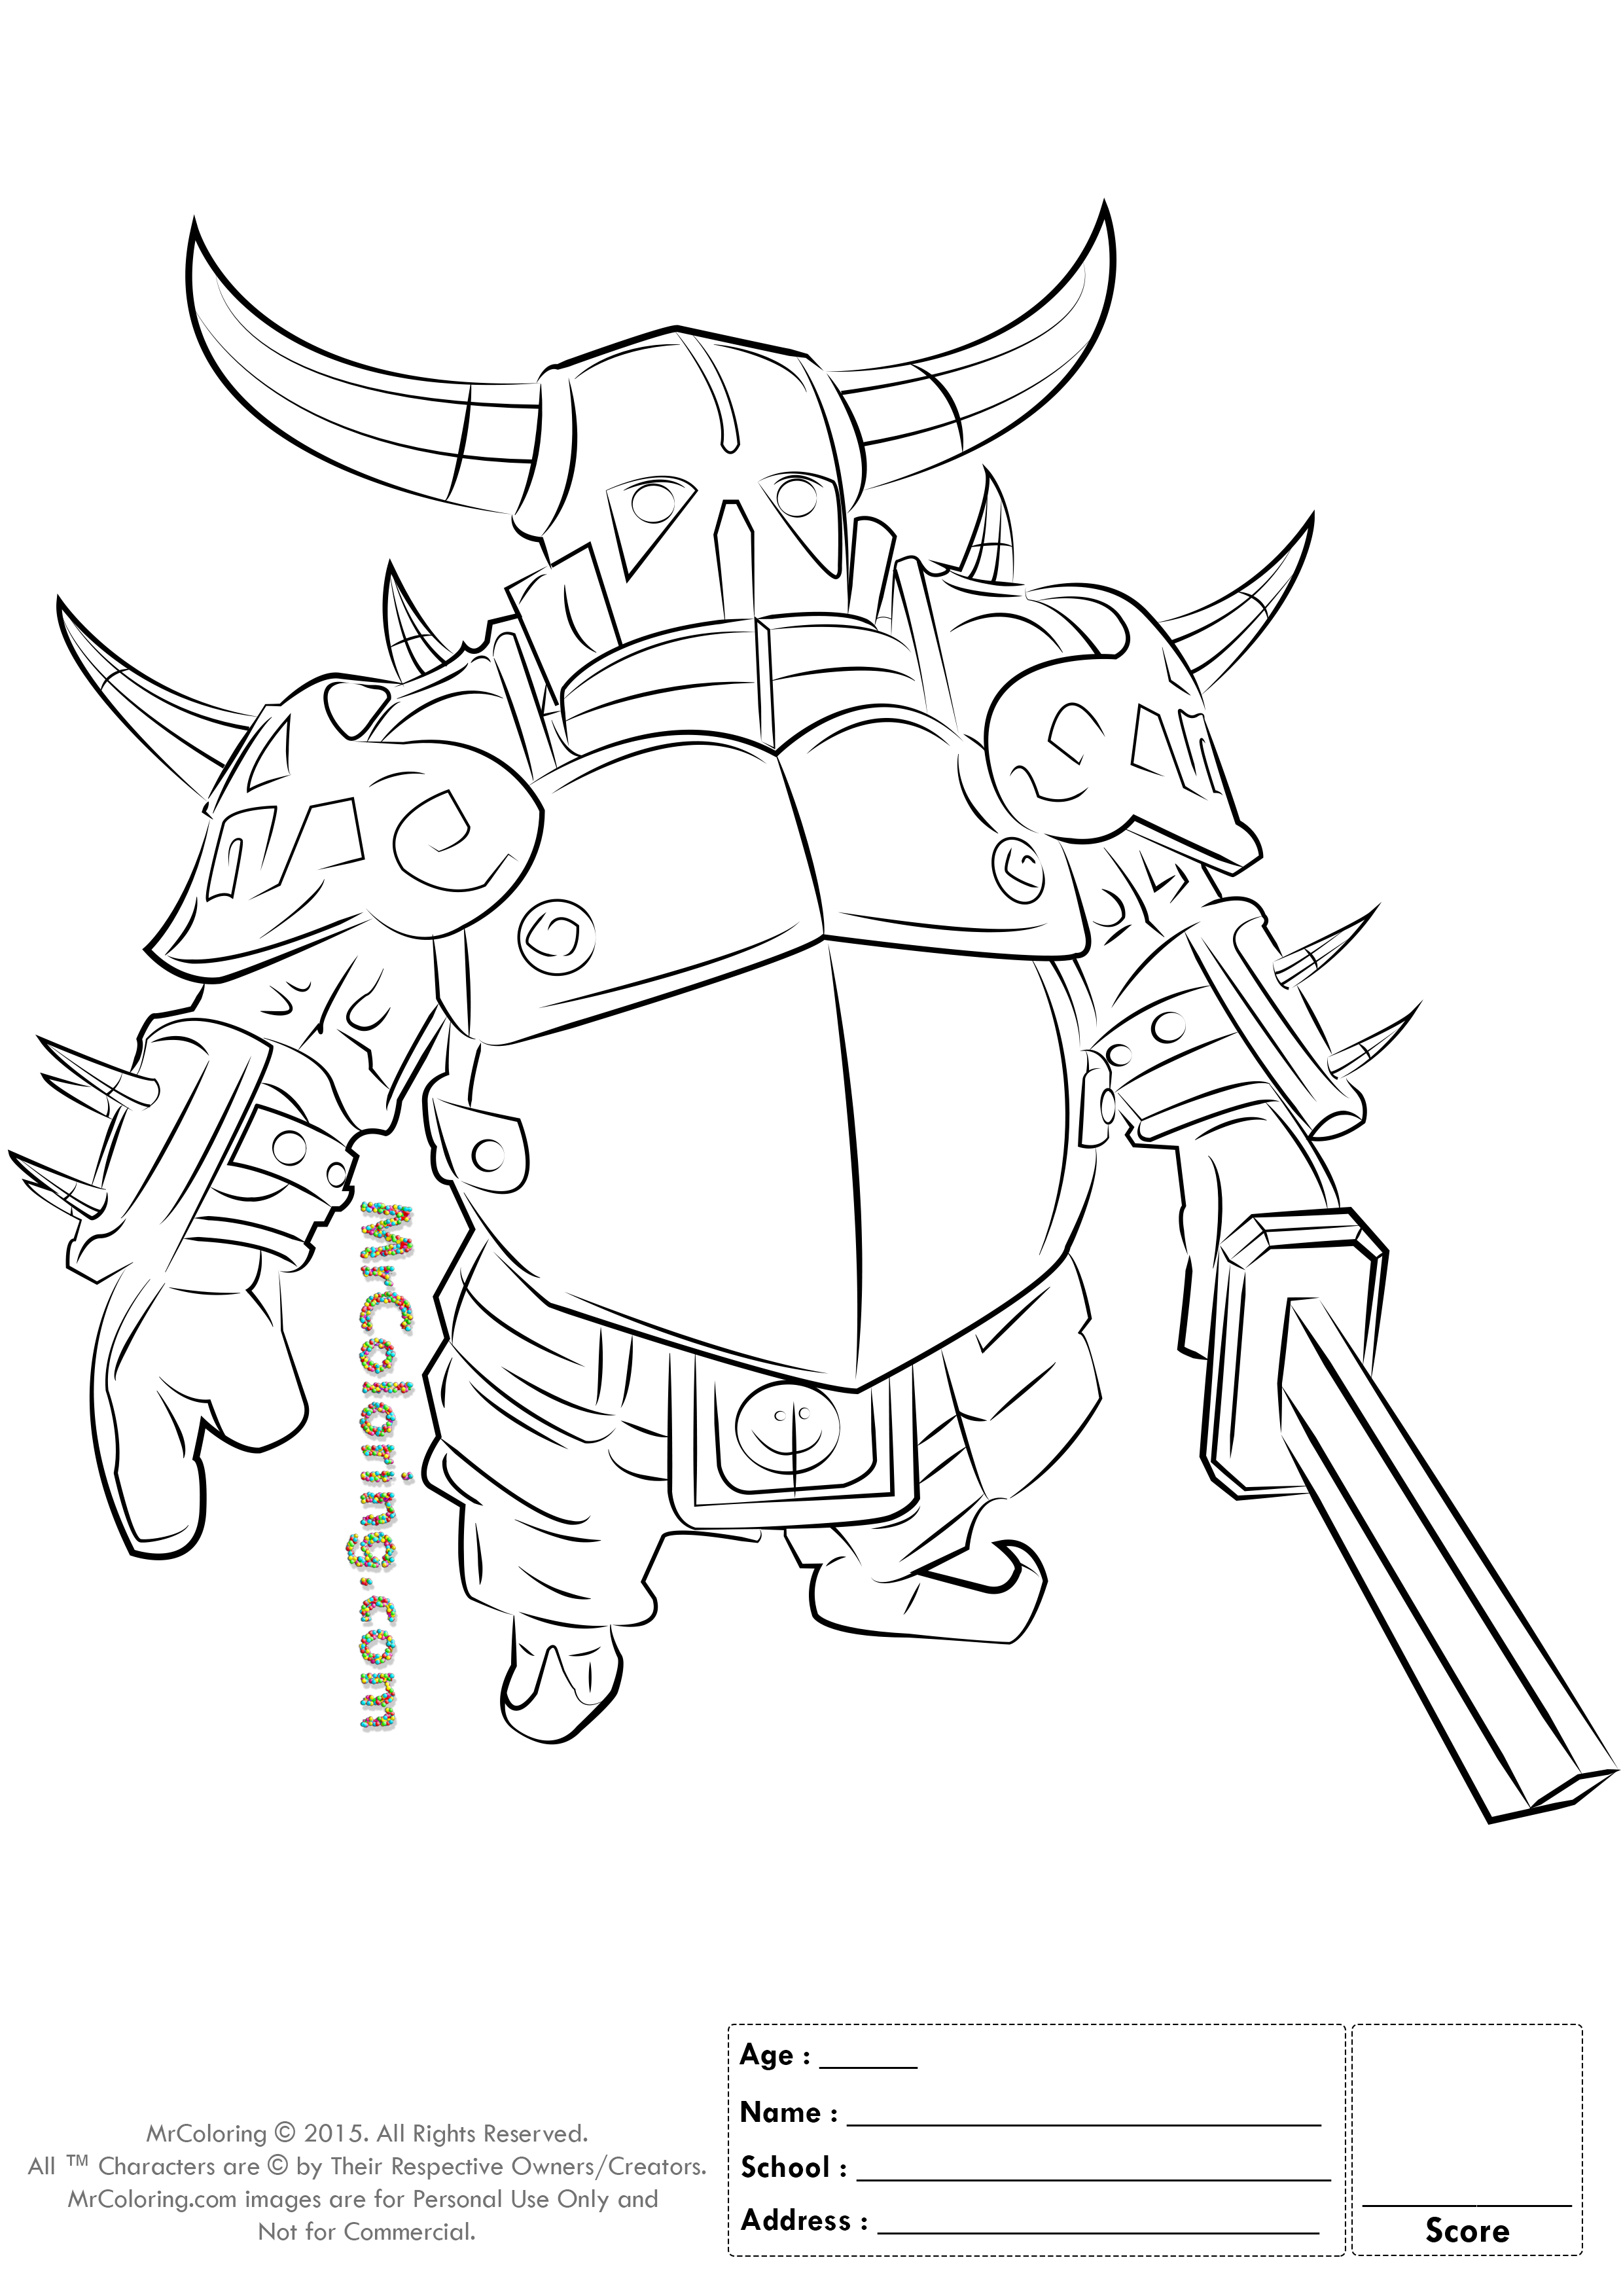 Clash Of Clans Pekka Coloring Pages - 1  MrColoring.com ...